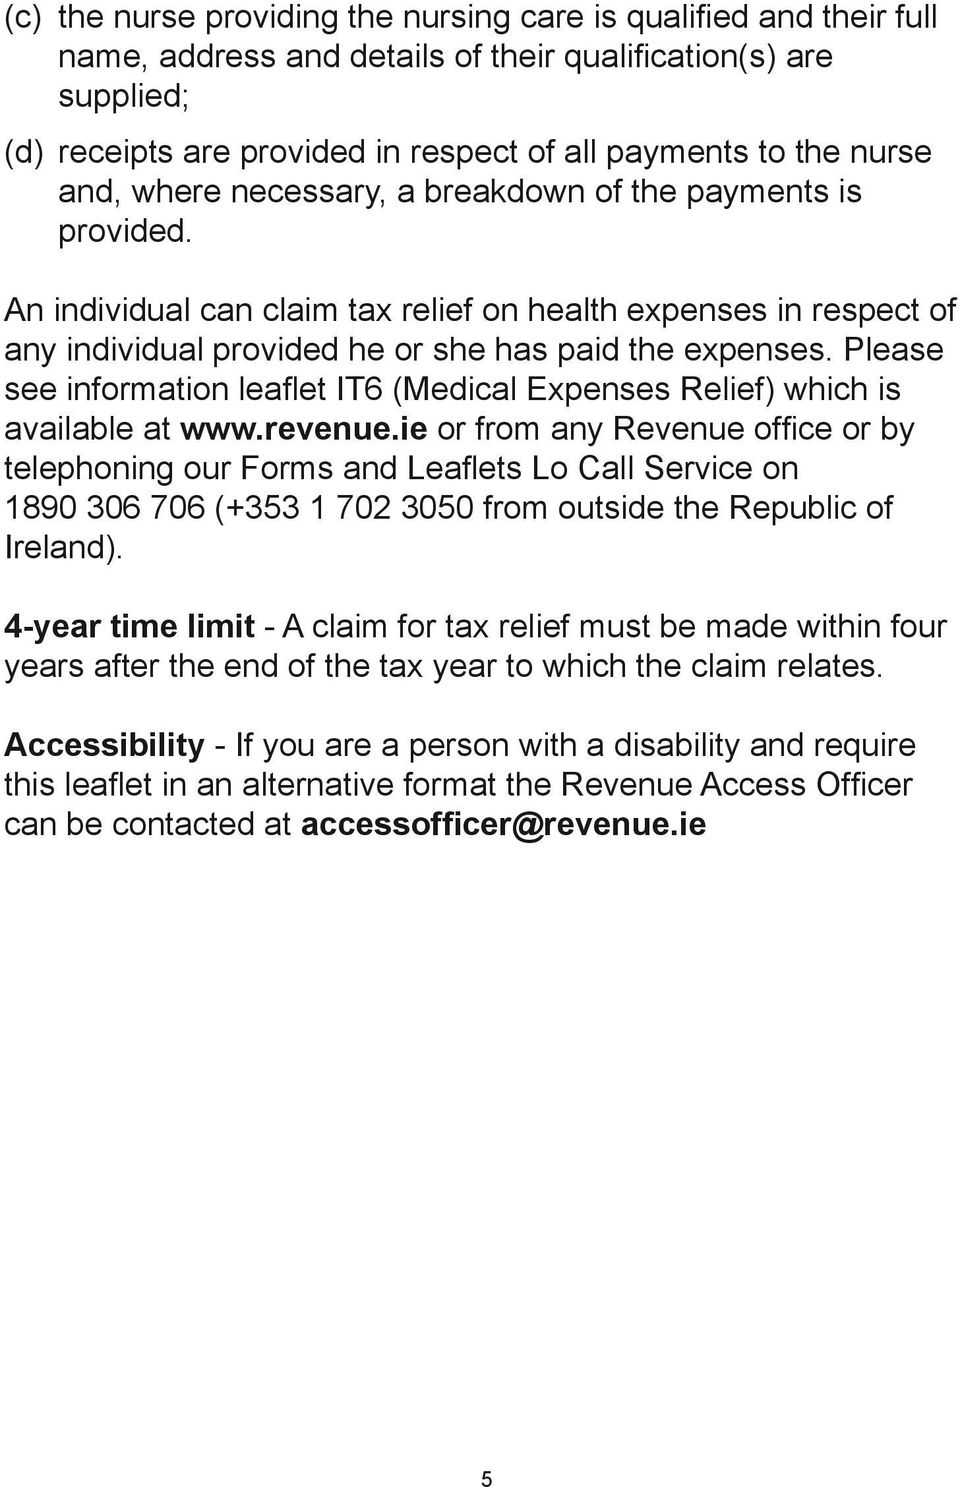 Please see information leaflet IT6 (Medical Expenses Relief) which is available at www.revenue.